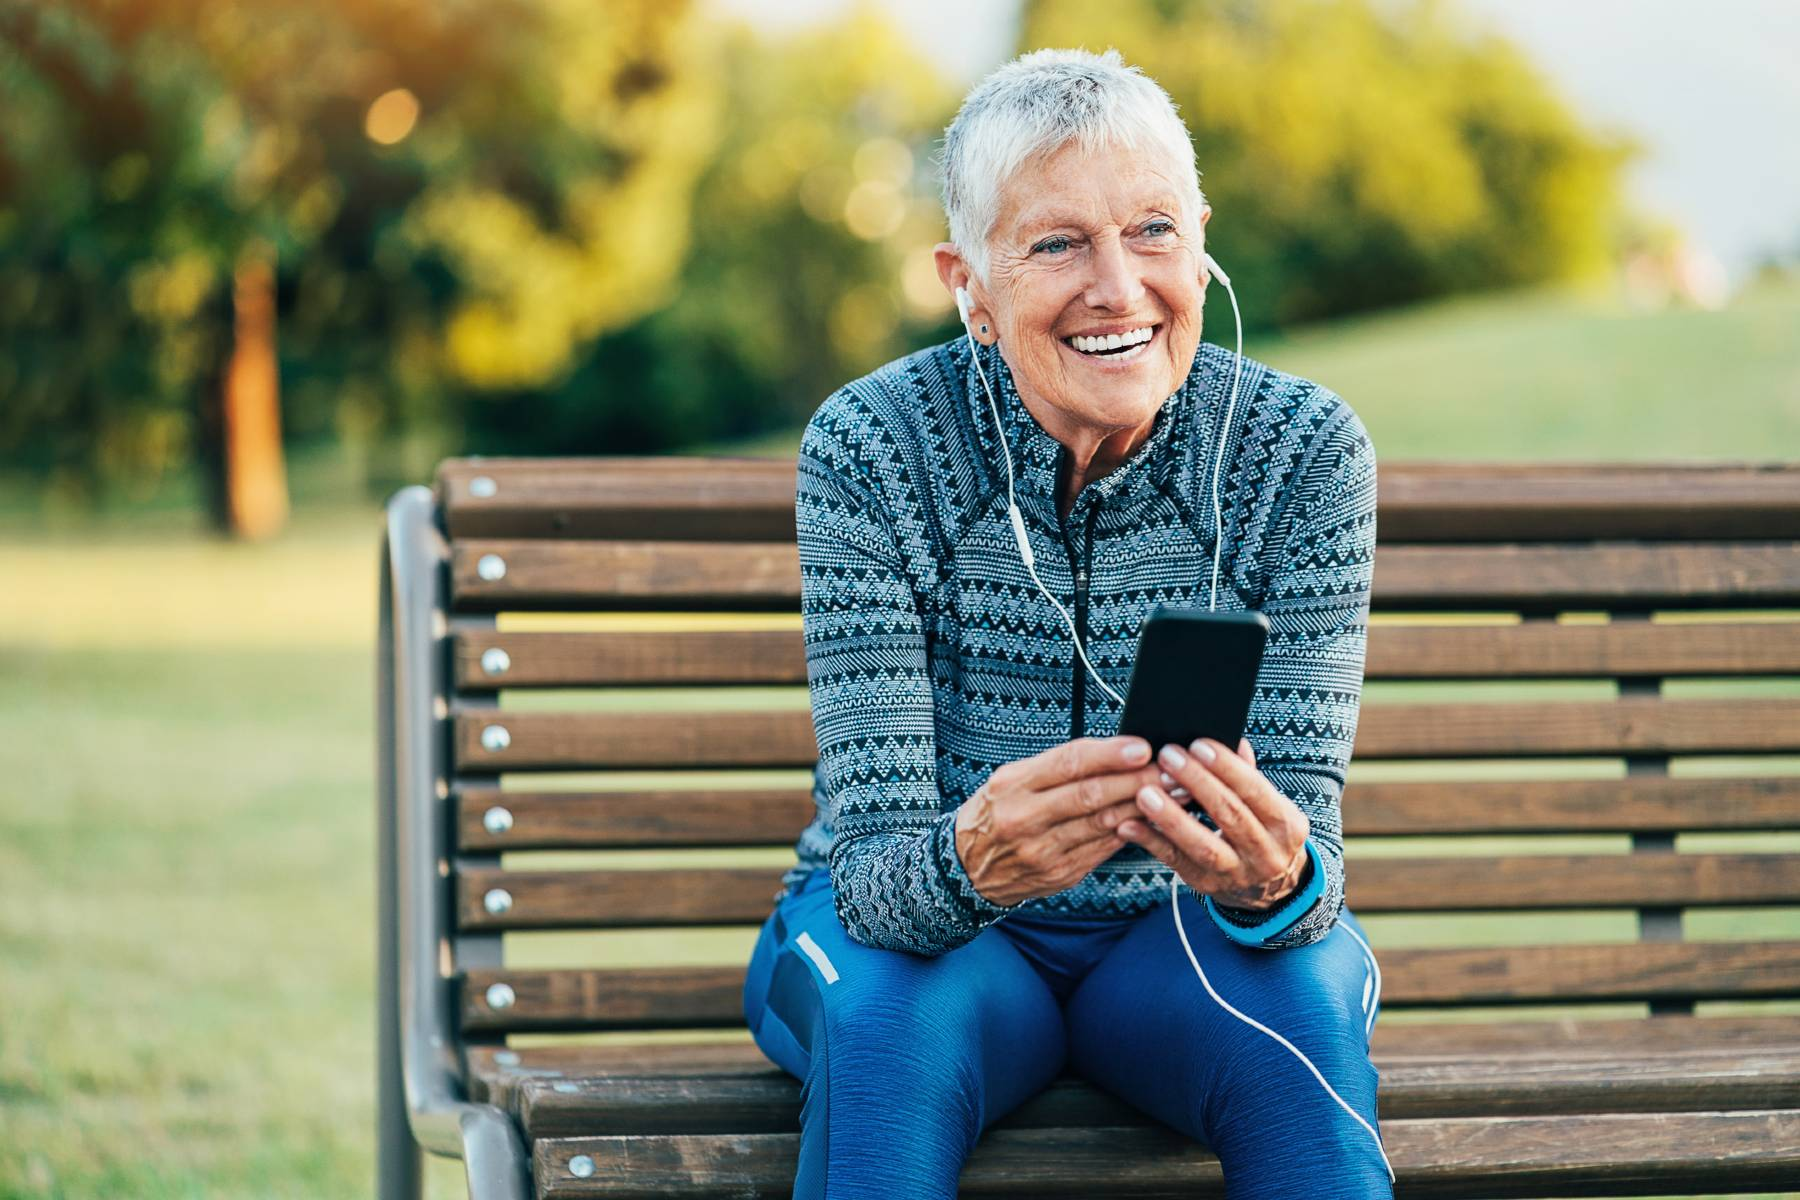 A senior woman in athletic gear stops her run and sits on a park bench to list to music on her phone